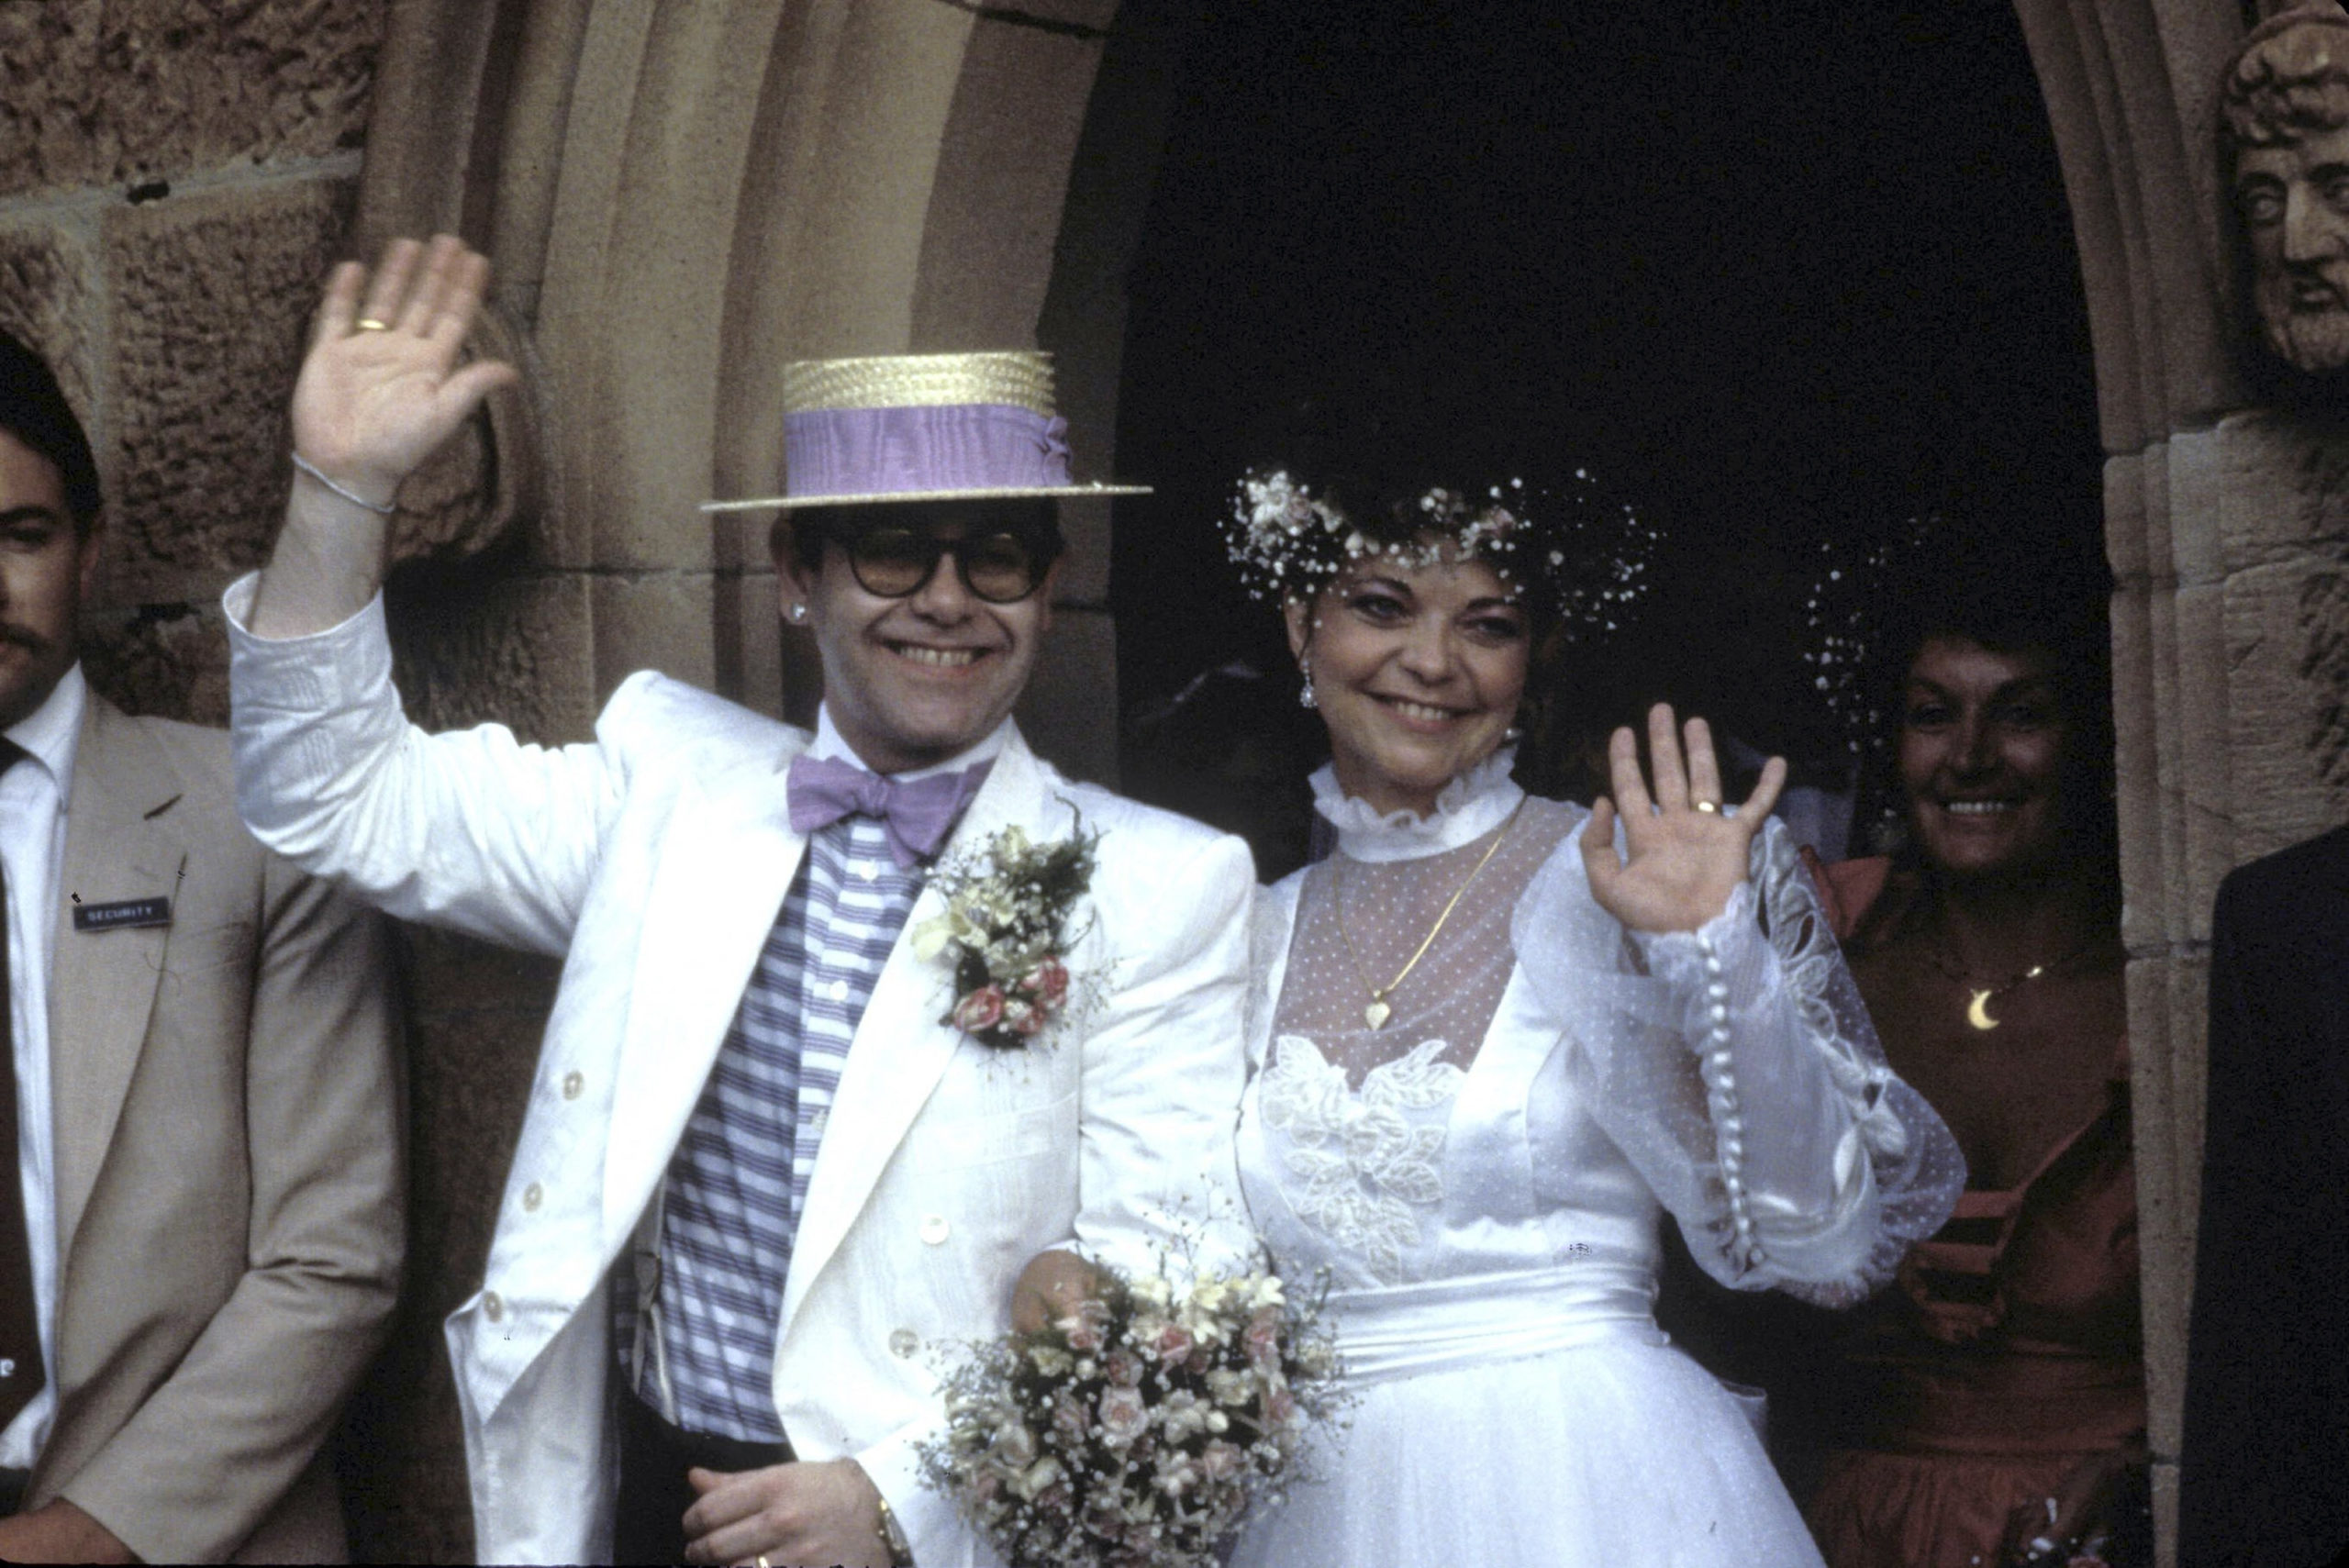 Elton John and Renate Blauel. (Patrick Riviere/Getty Images)